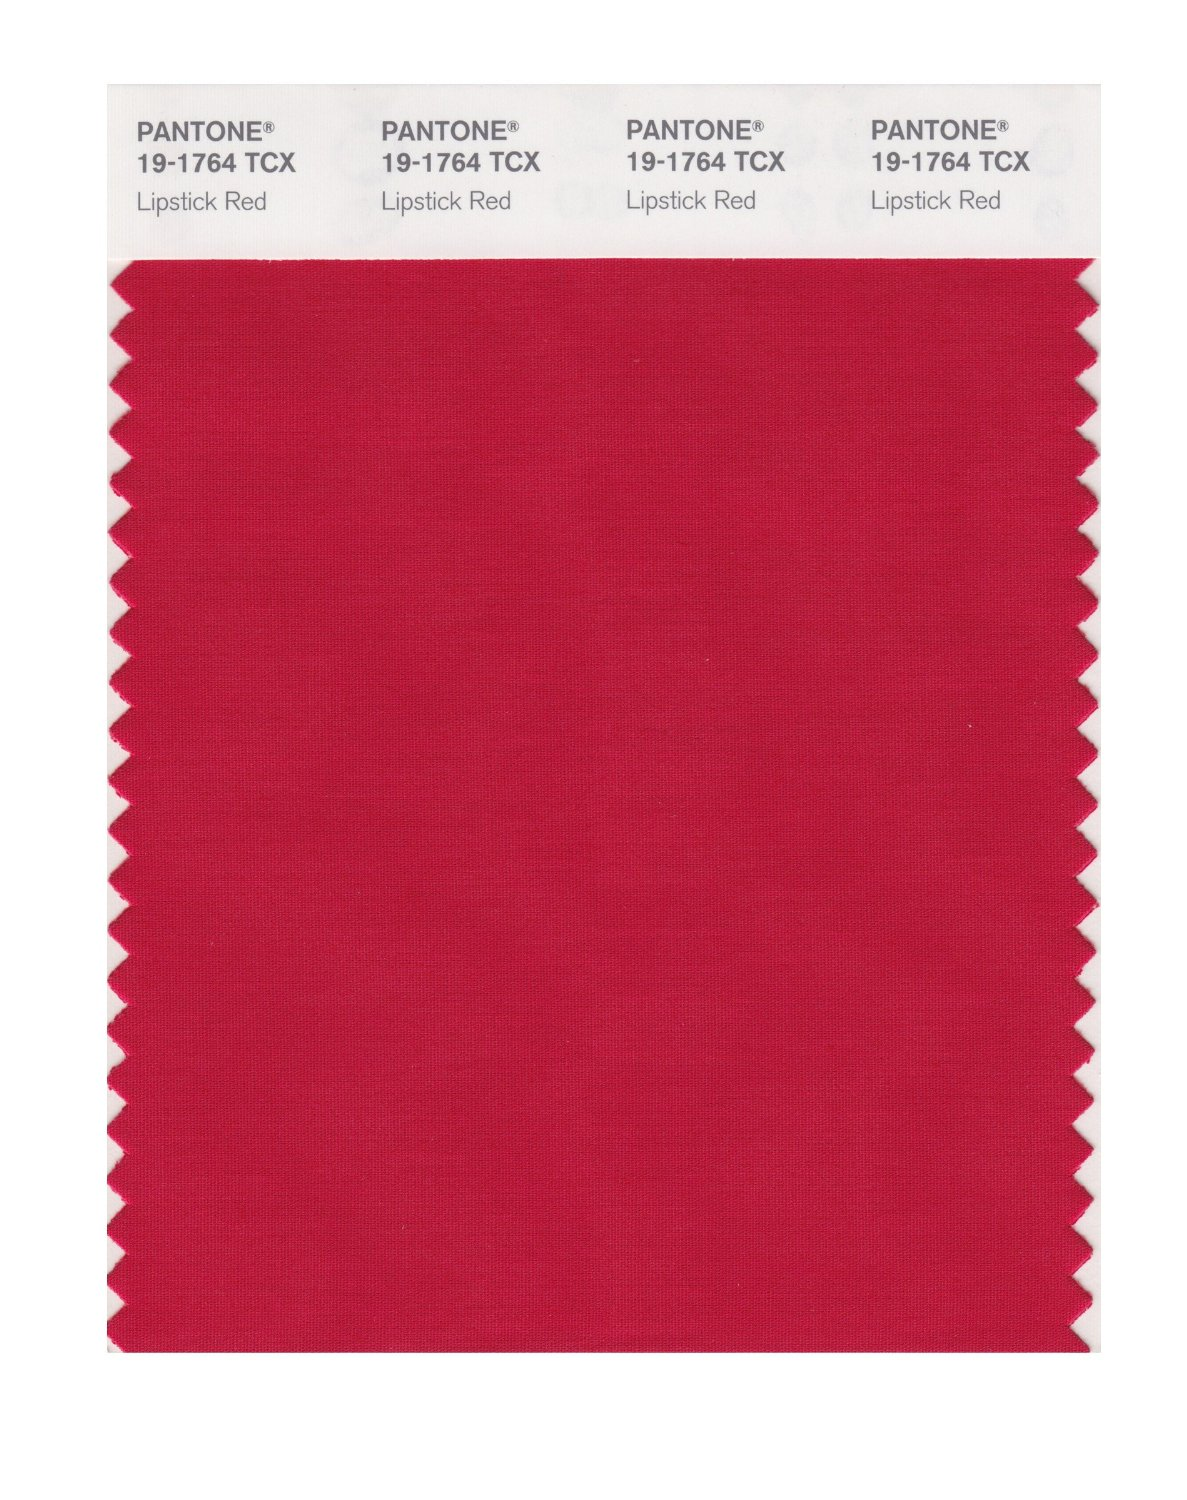 Pantone Smart Swatch 19-1764 Lipstick Red